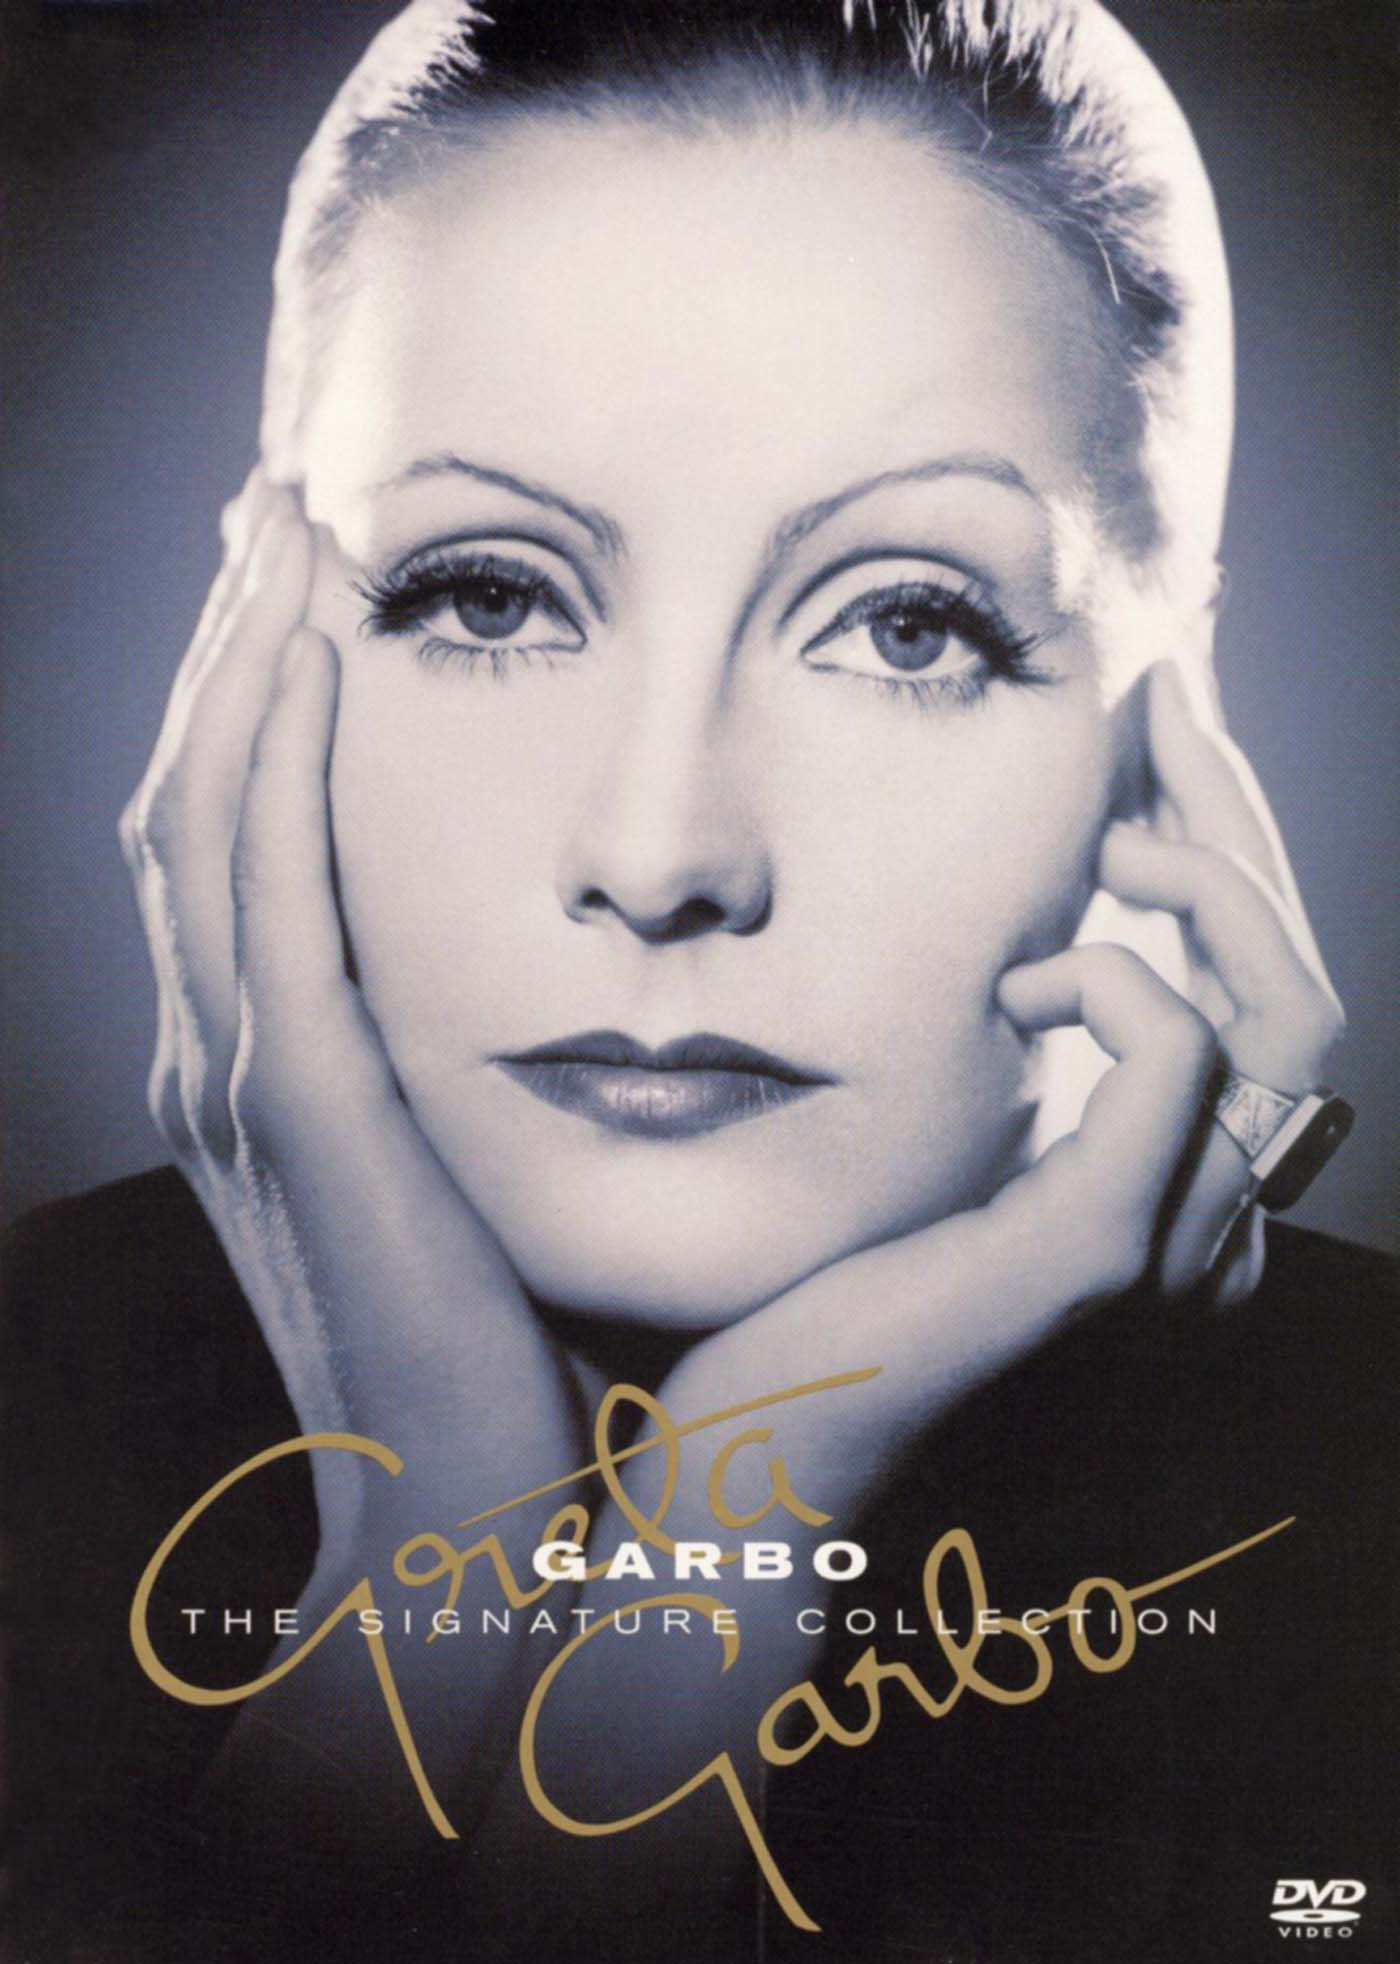 Garbo: The Signature Collection